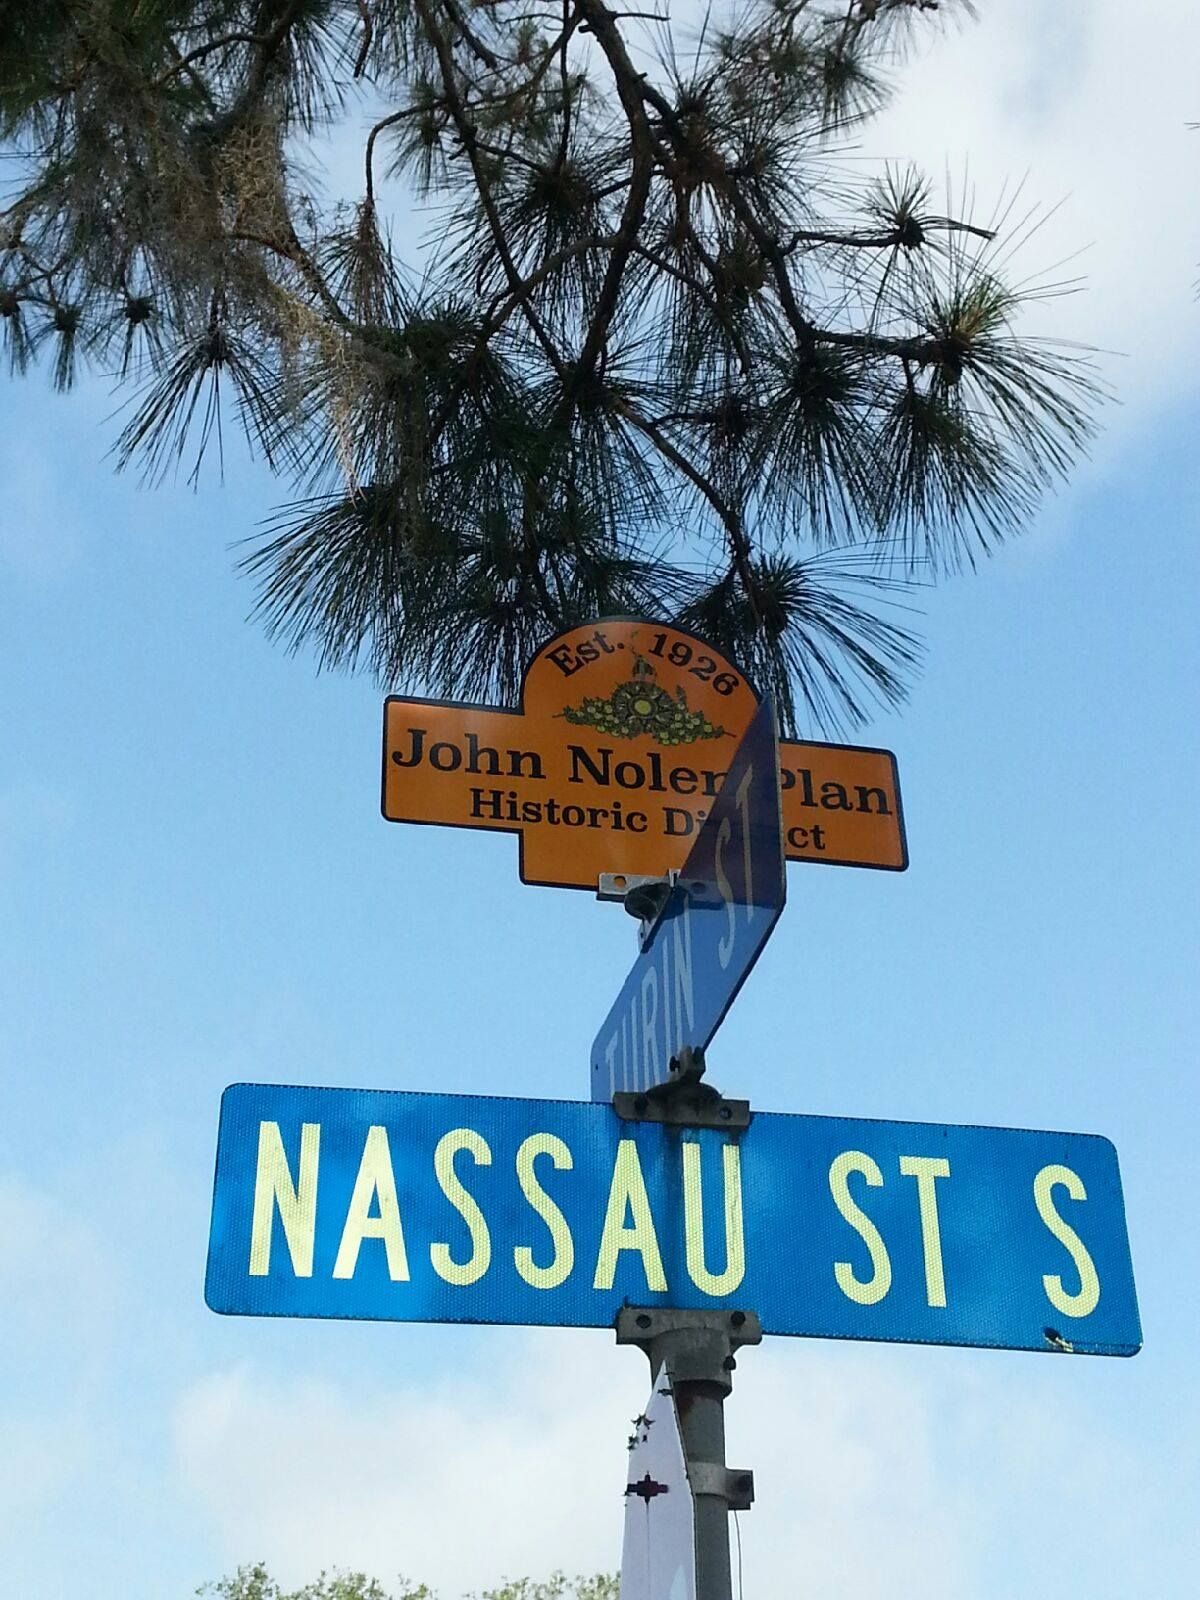 The street sign toppers are posted to identify the John Nolen Plan ...